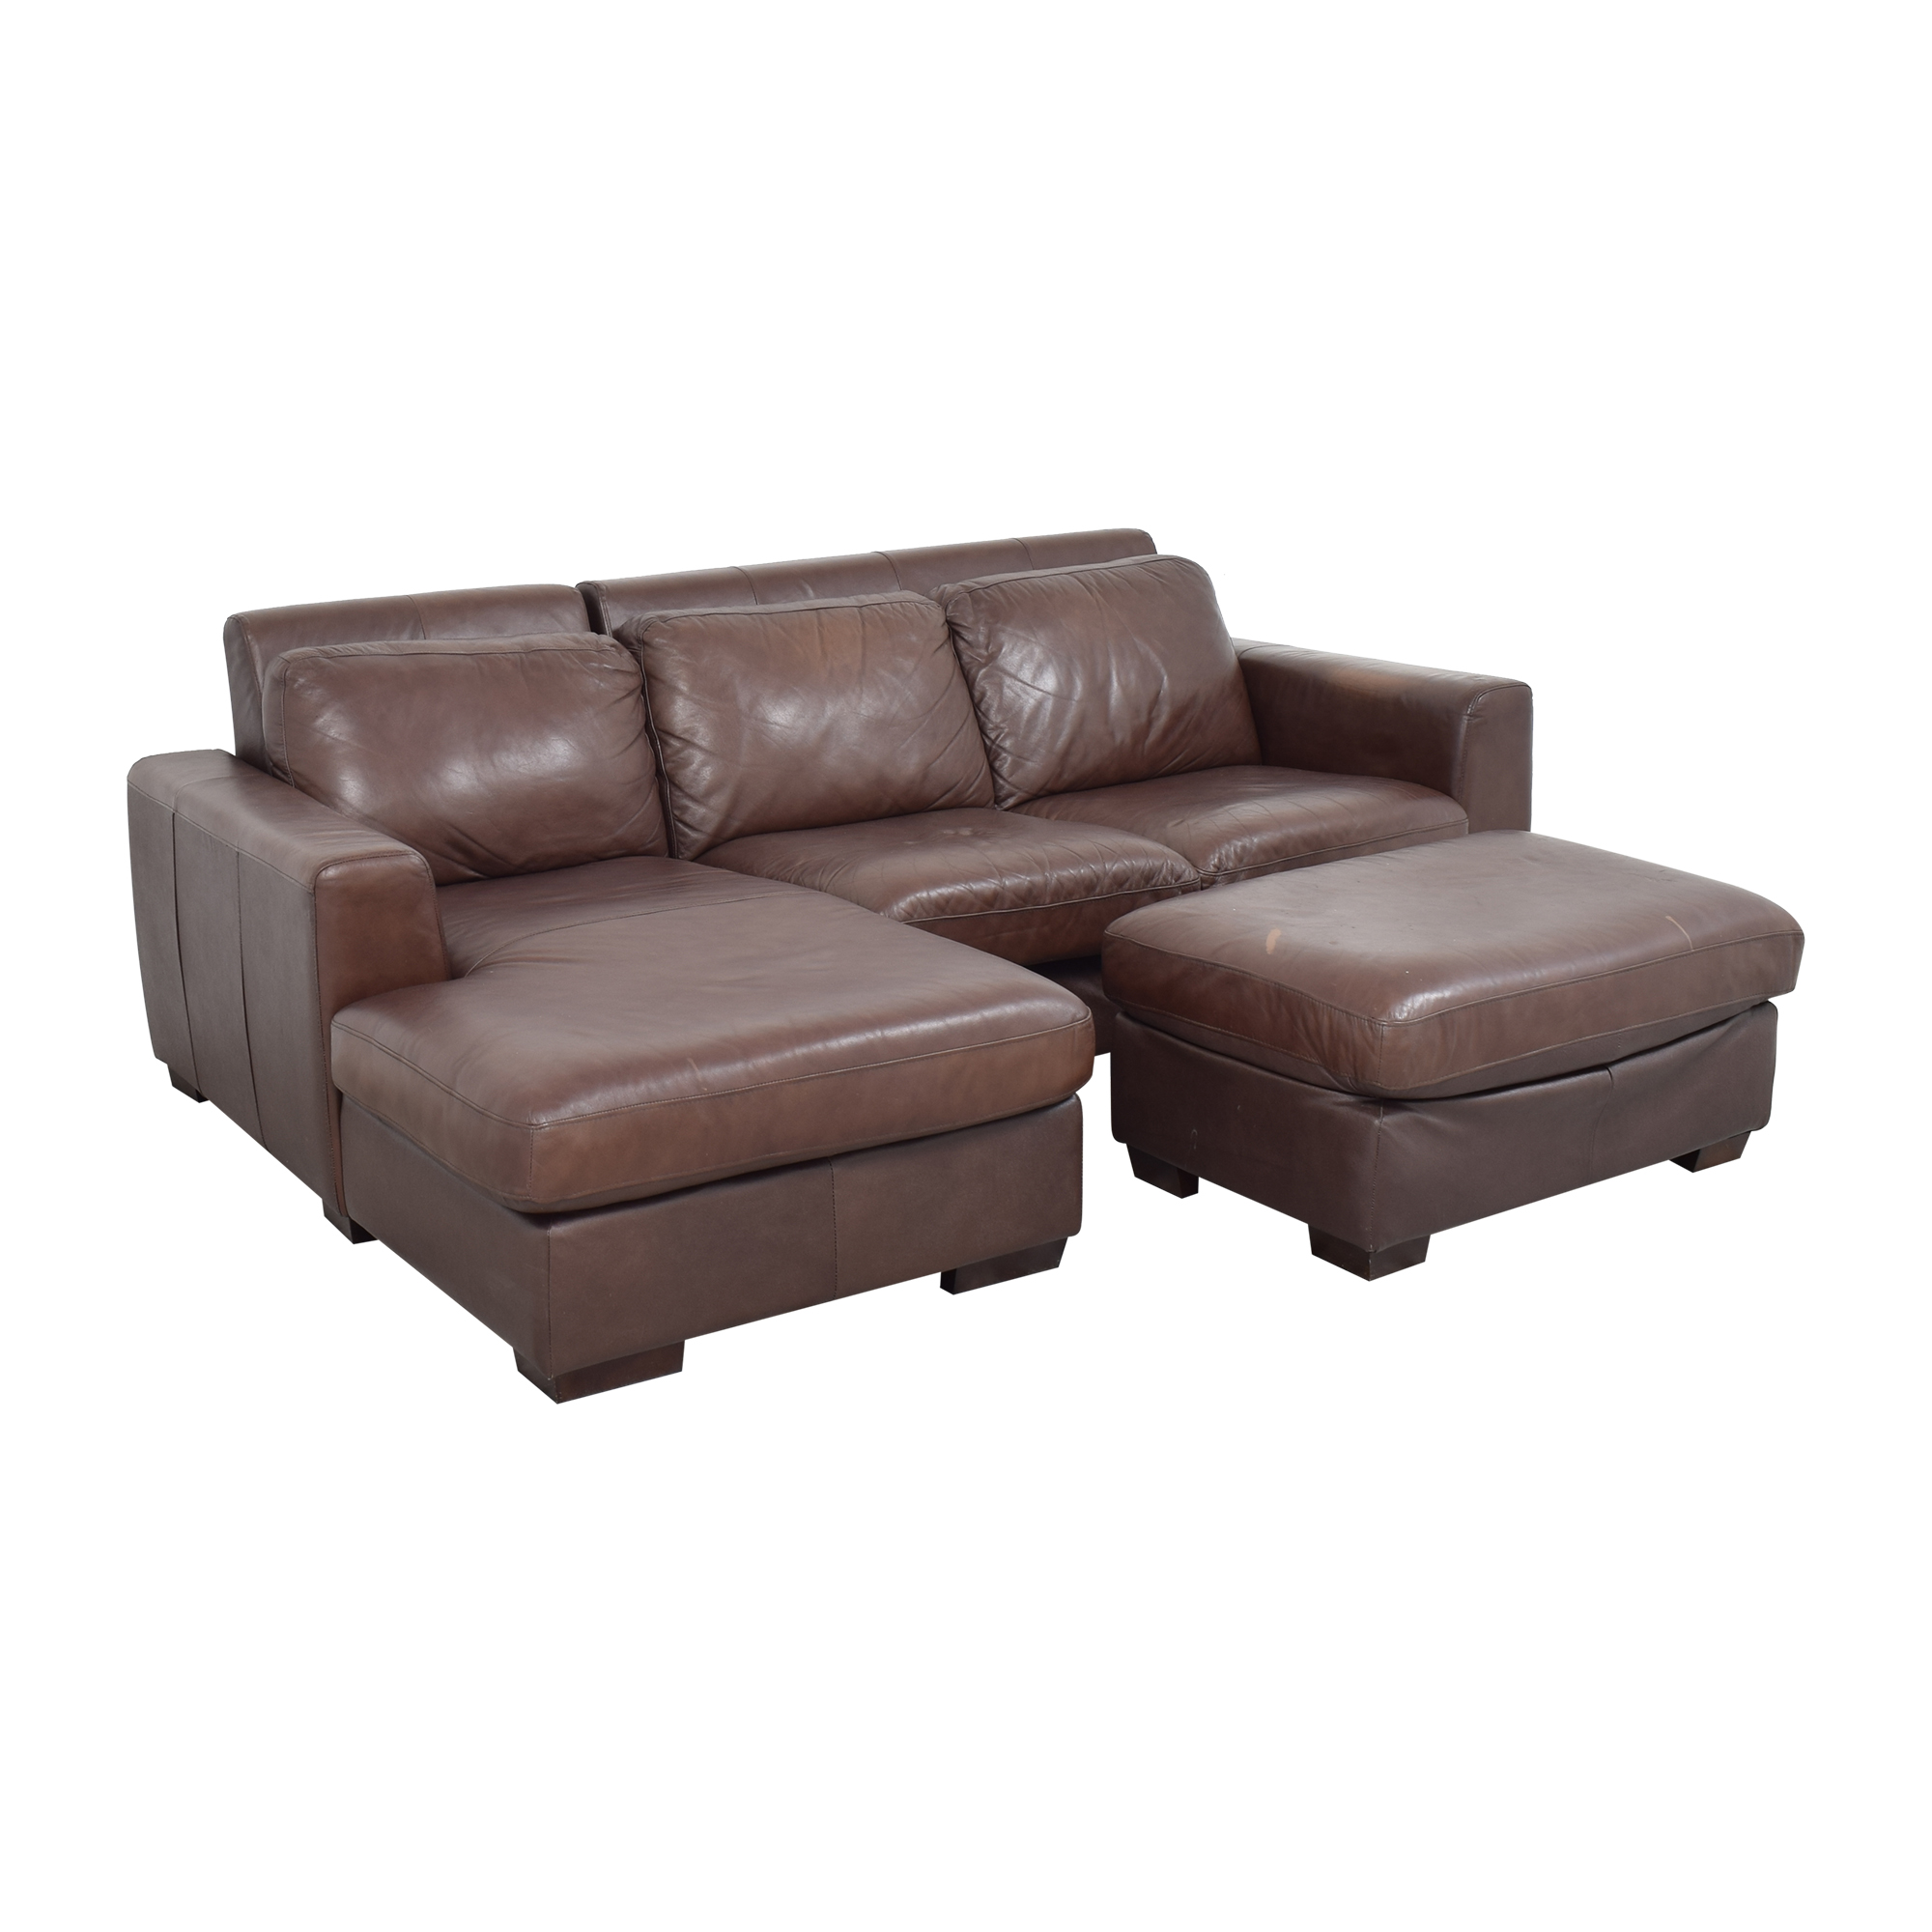 Costco Costco Layla Sectional Sofa with Ottoman price